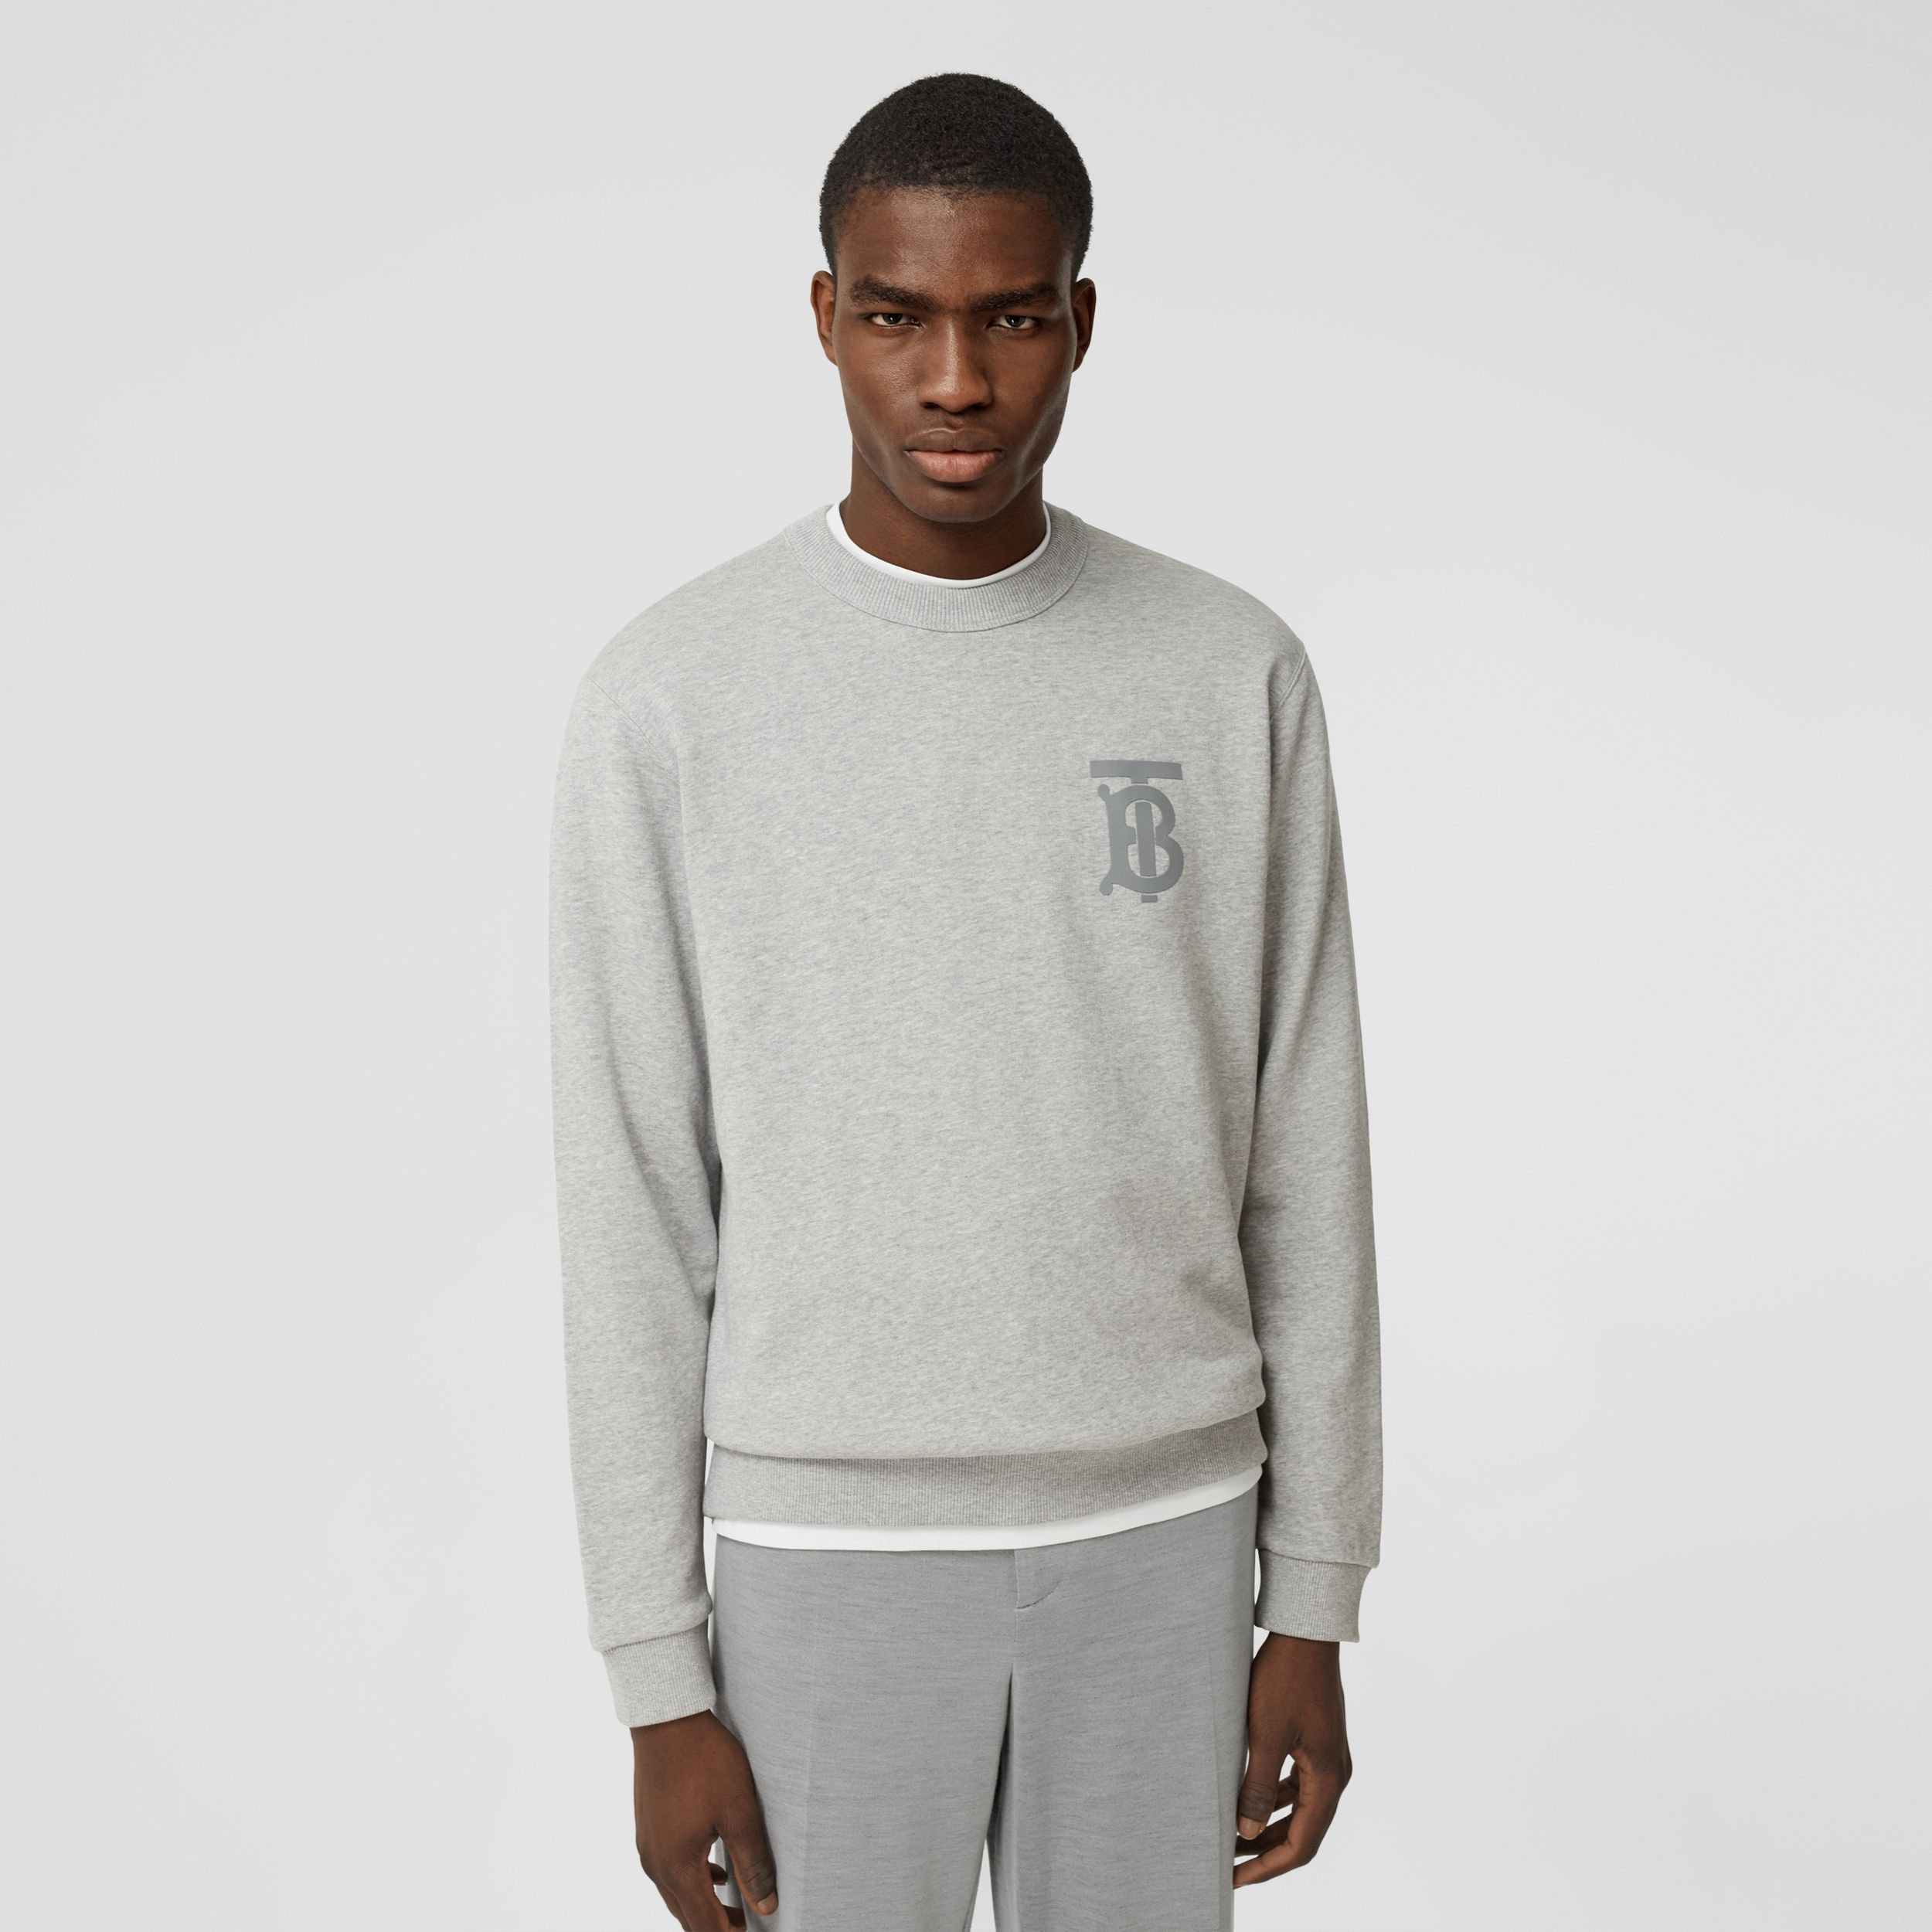 Monogram Motif Cotton Sweatshirt in Pale Grey Melange - Men | Burberry - 1